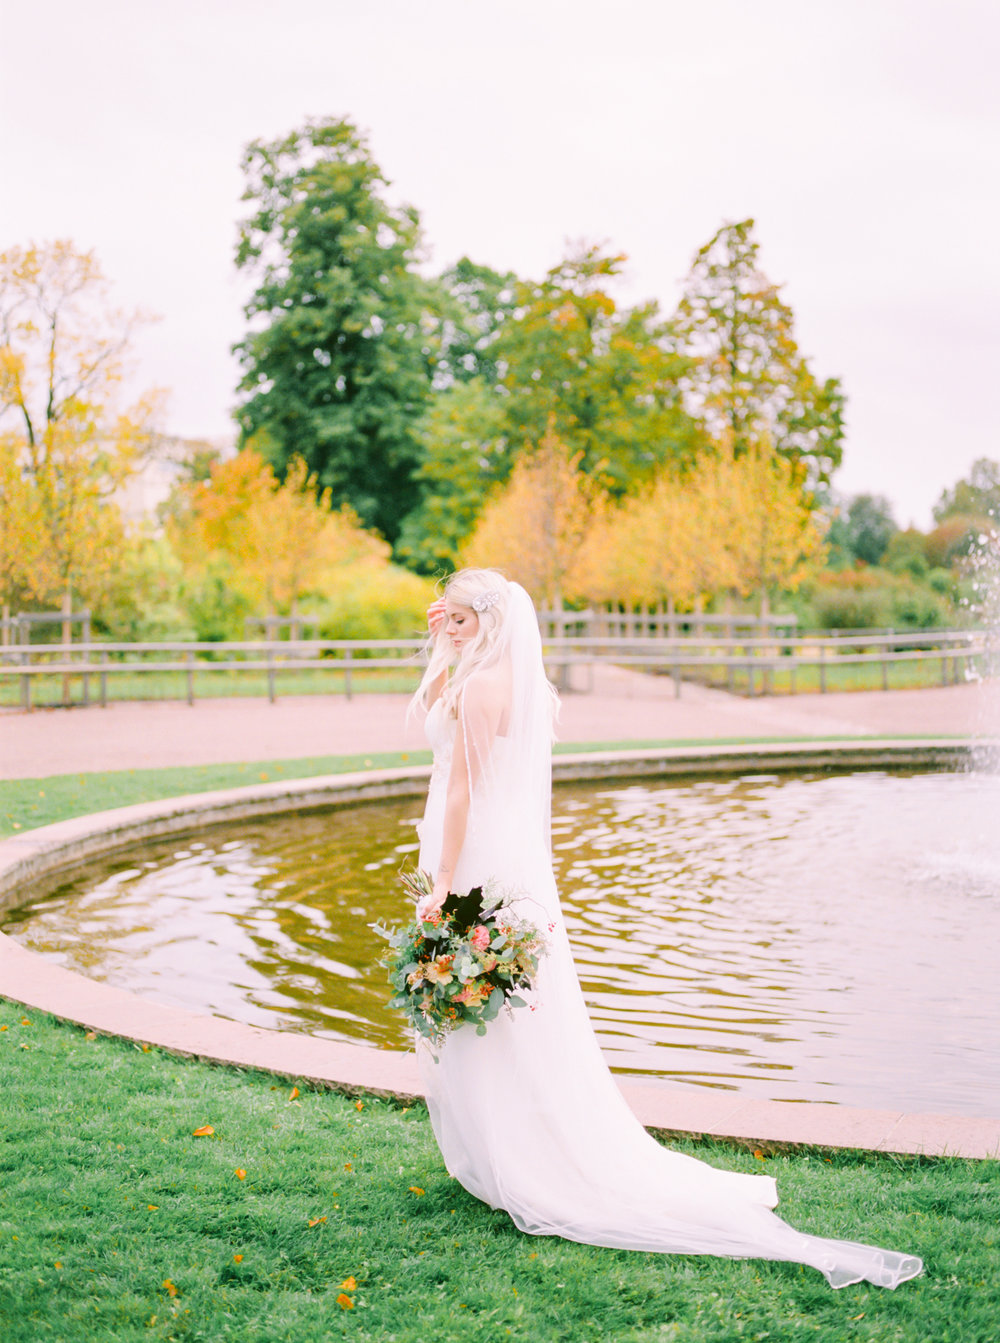 Elegant Organic Fall Swedish Bridal Wedding Styled Shoot - Erika Alvarenga Photography-89.jpg